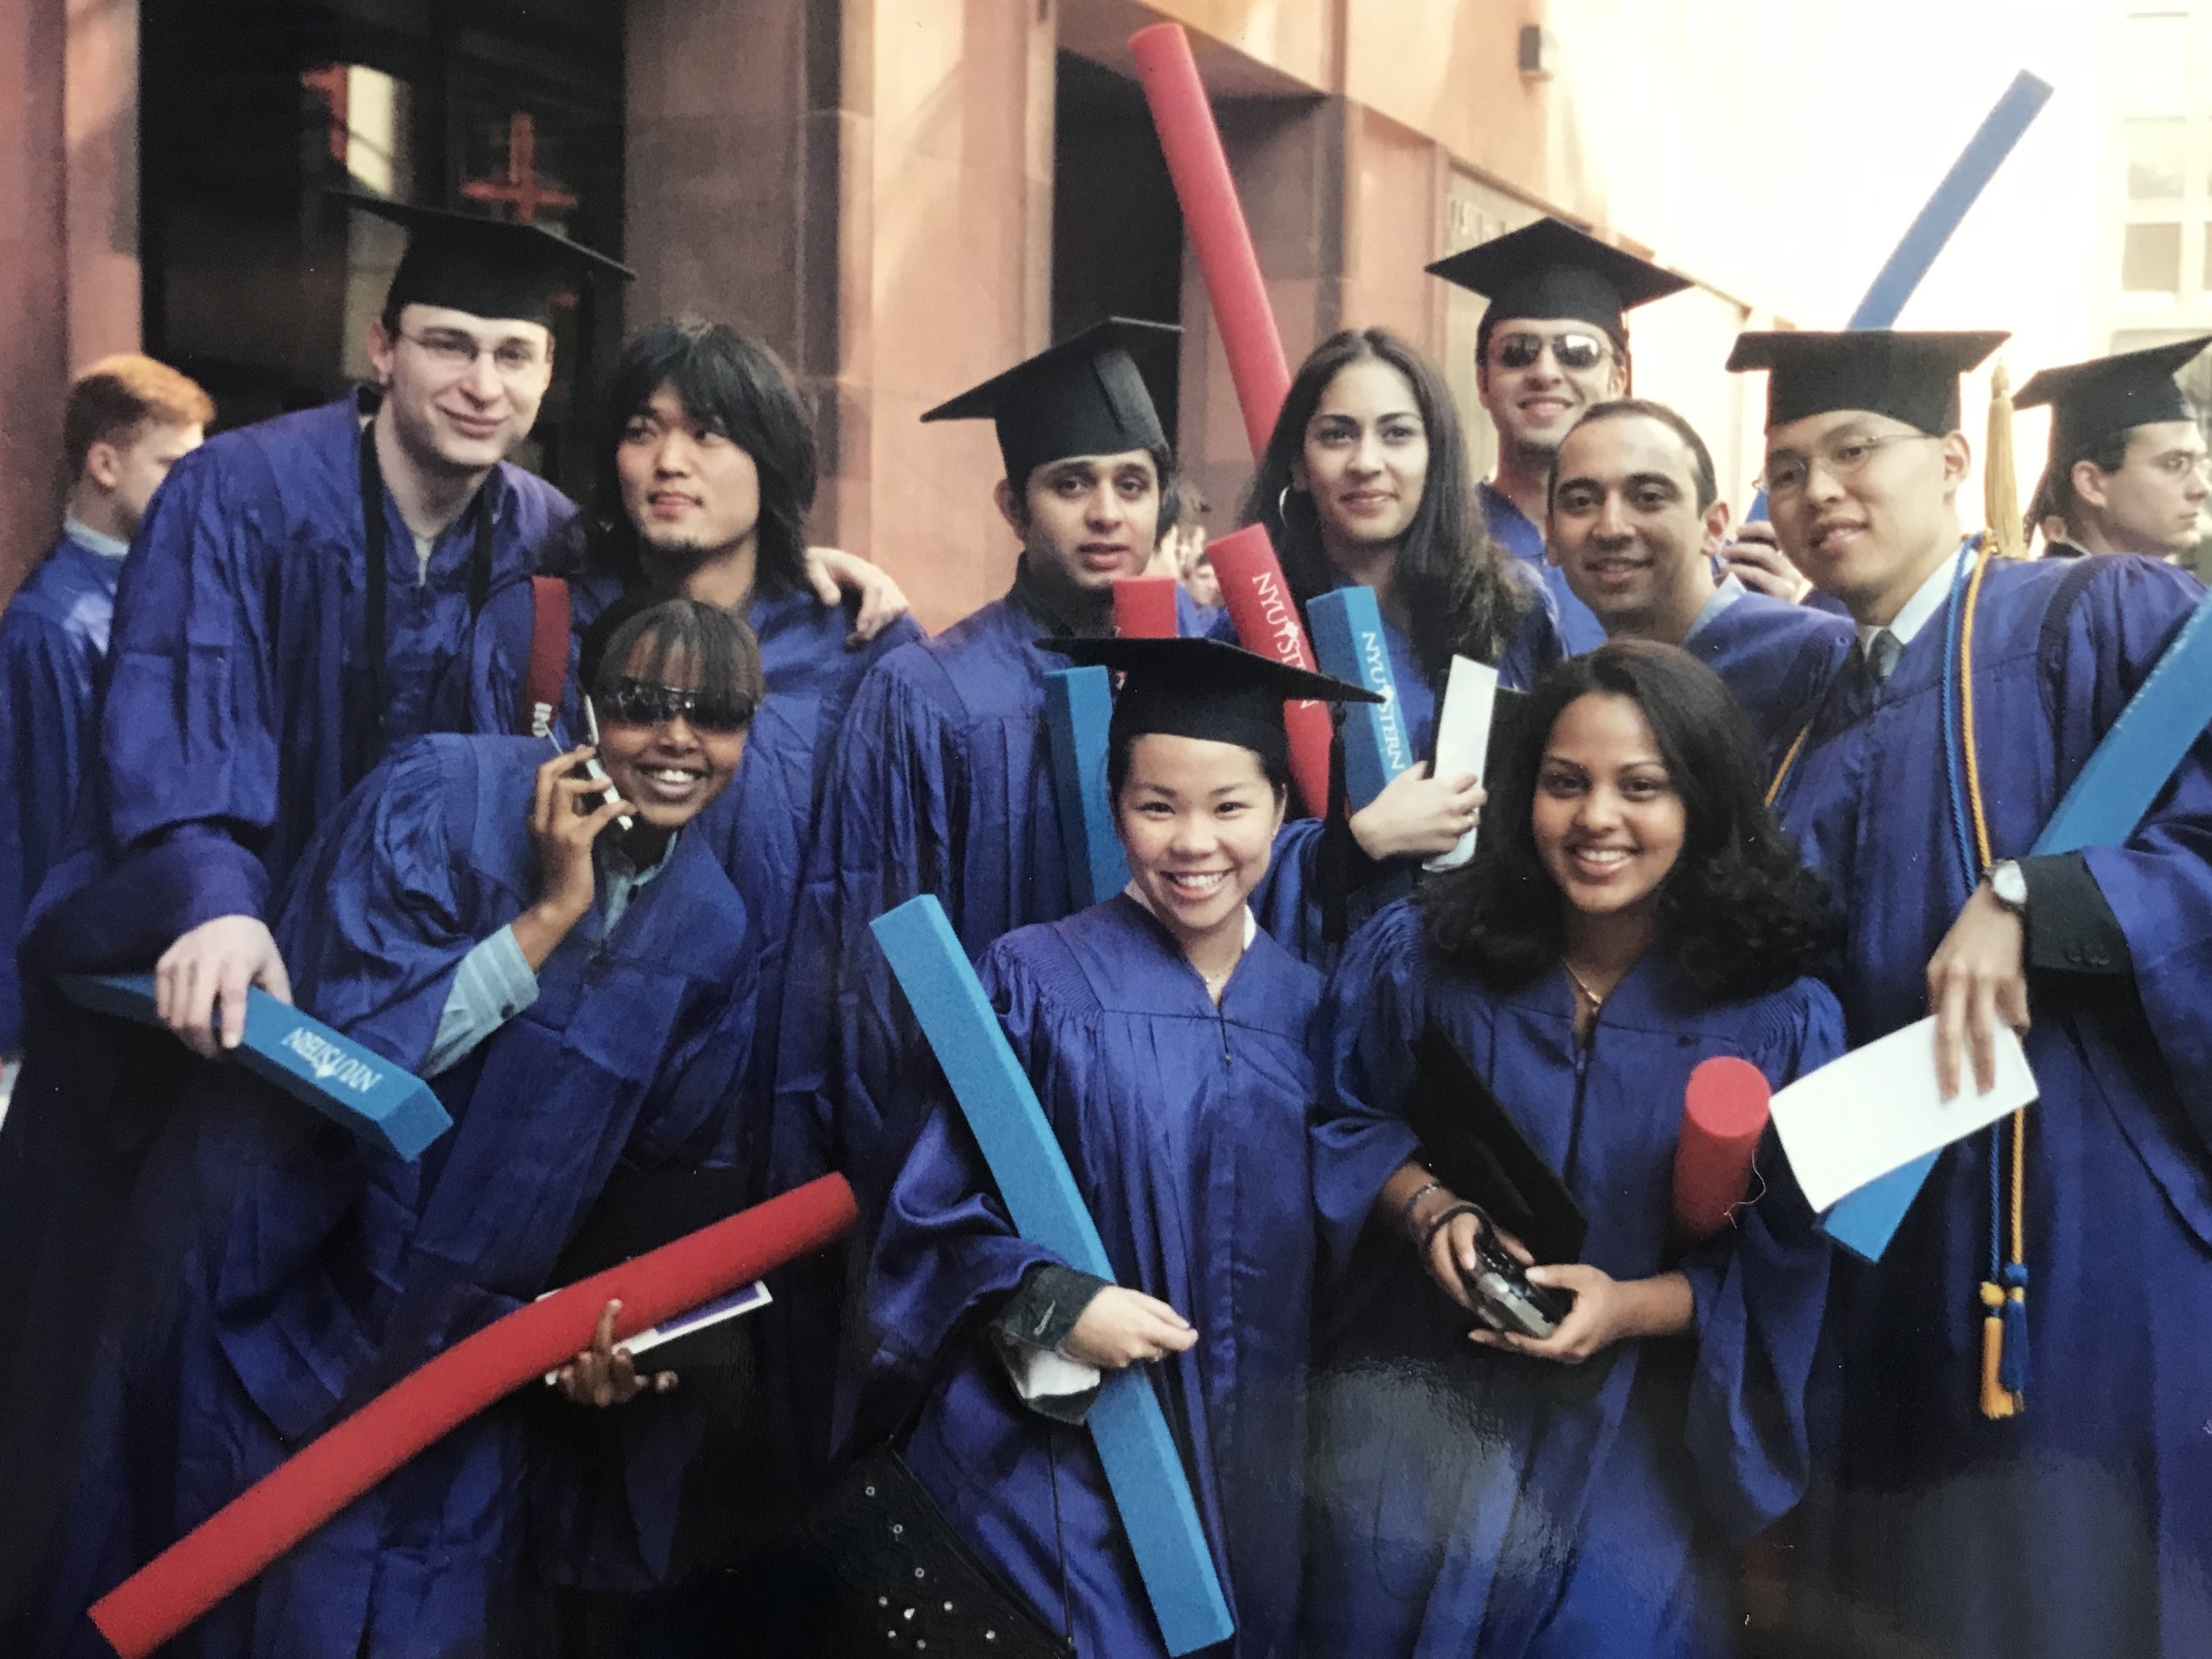 - I was educated in Catholic schools—Colegio San Agustin and De La Salle Zobel and graduated from New York University's Stern School of Business with a Marketing and International Business degree.